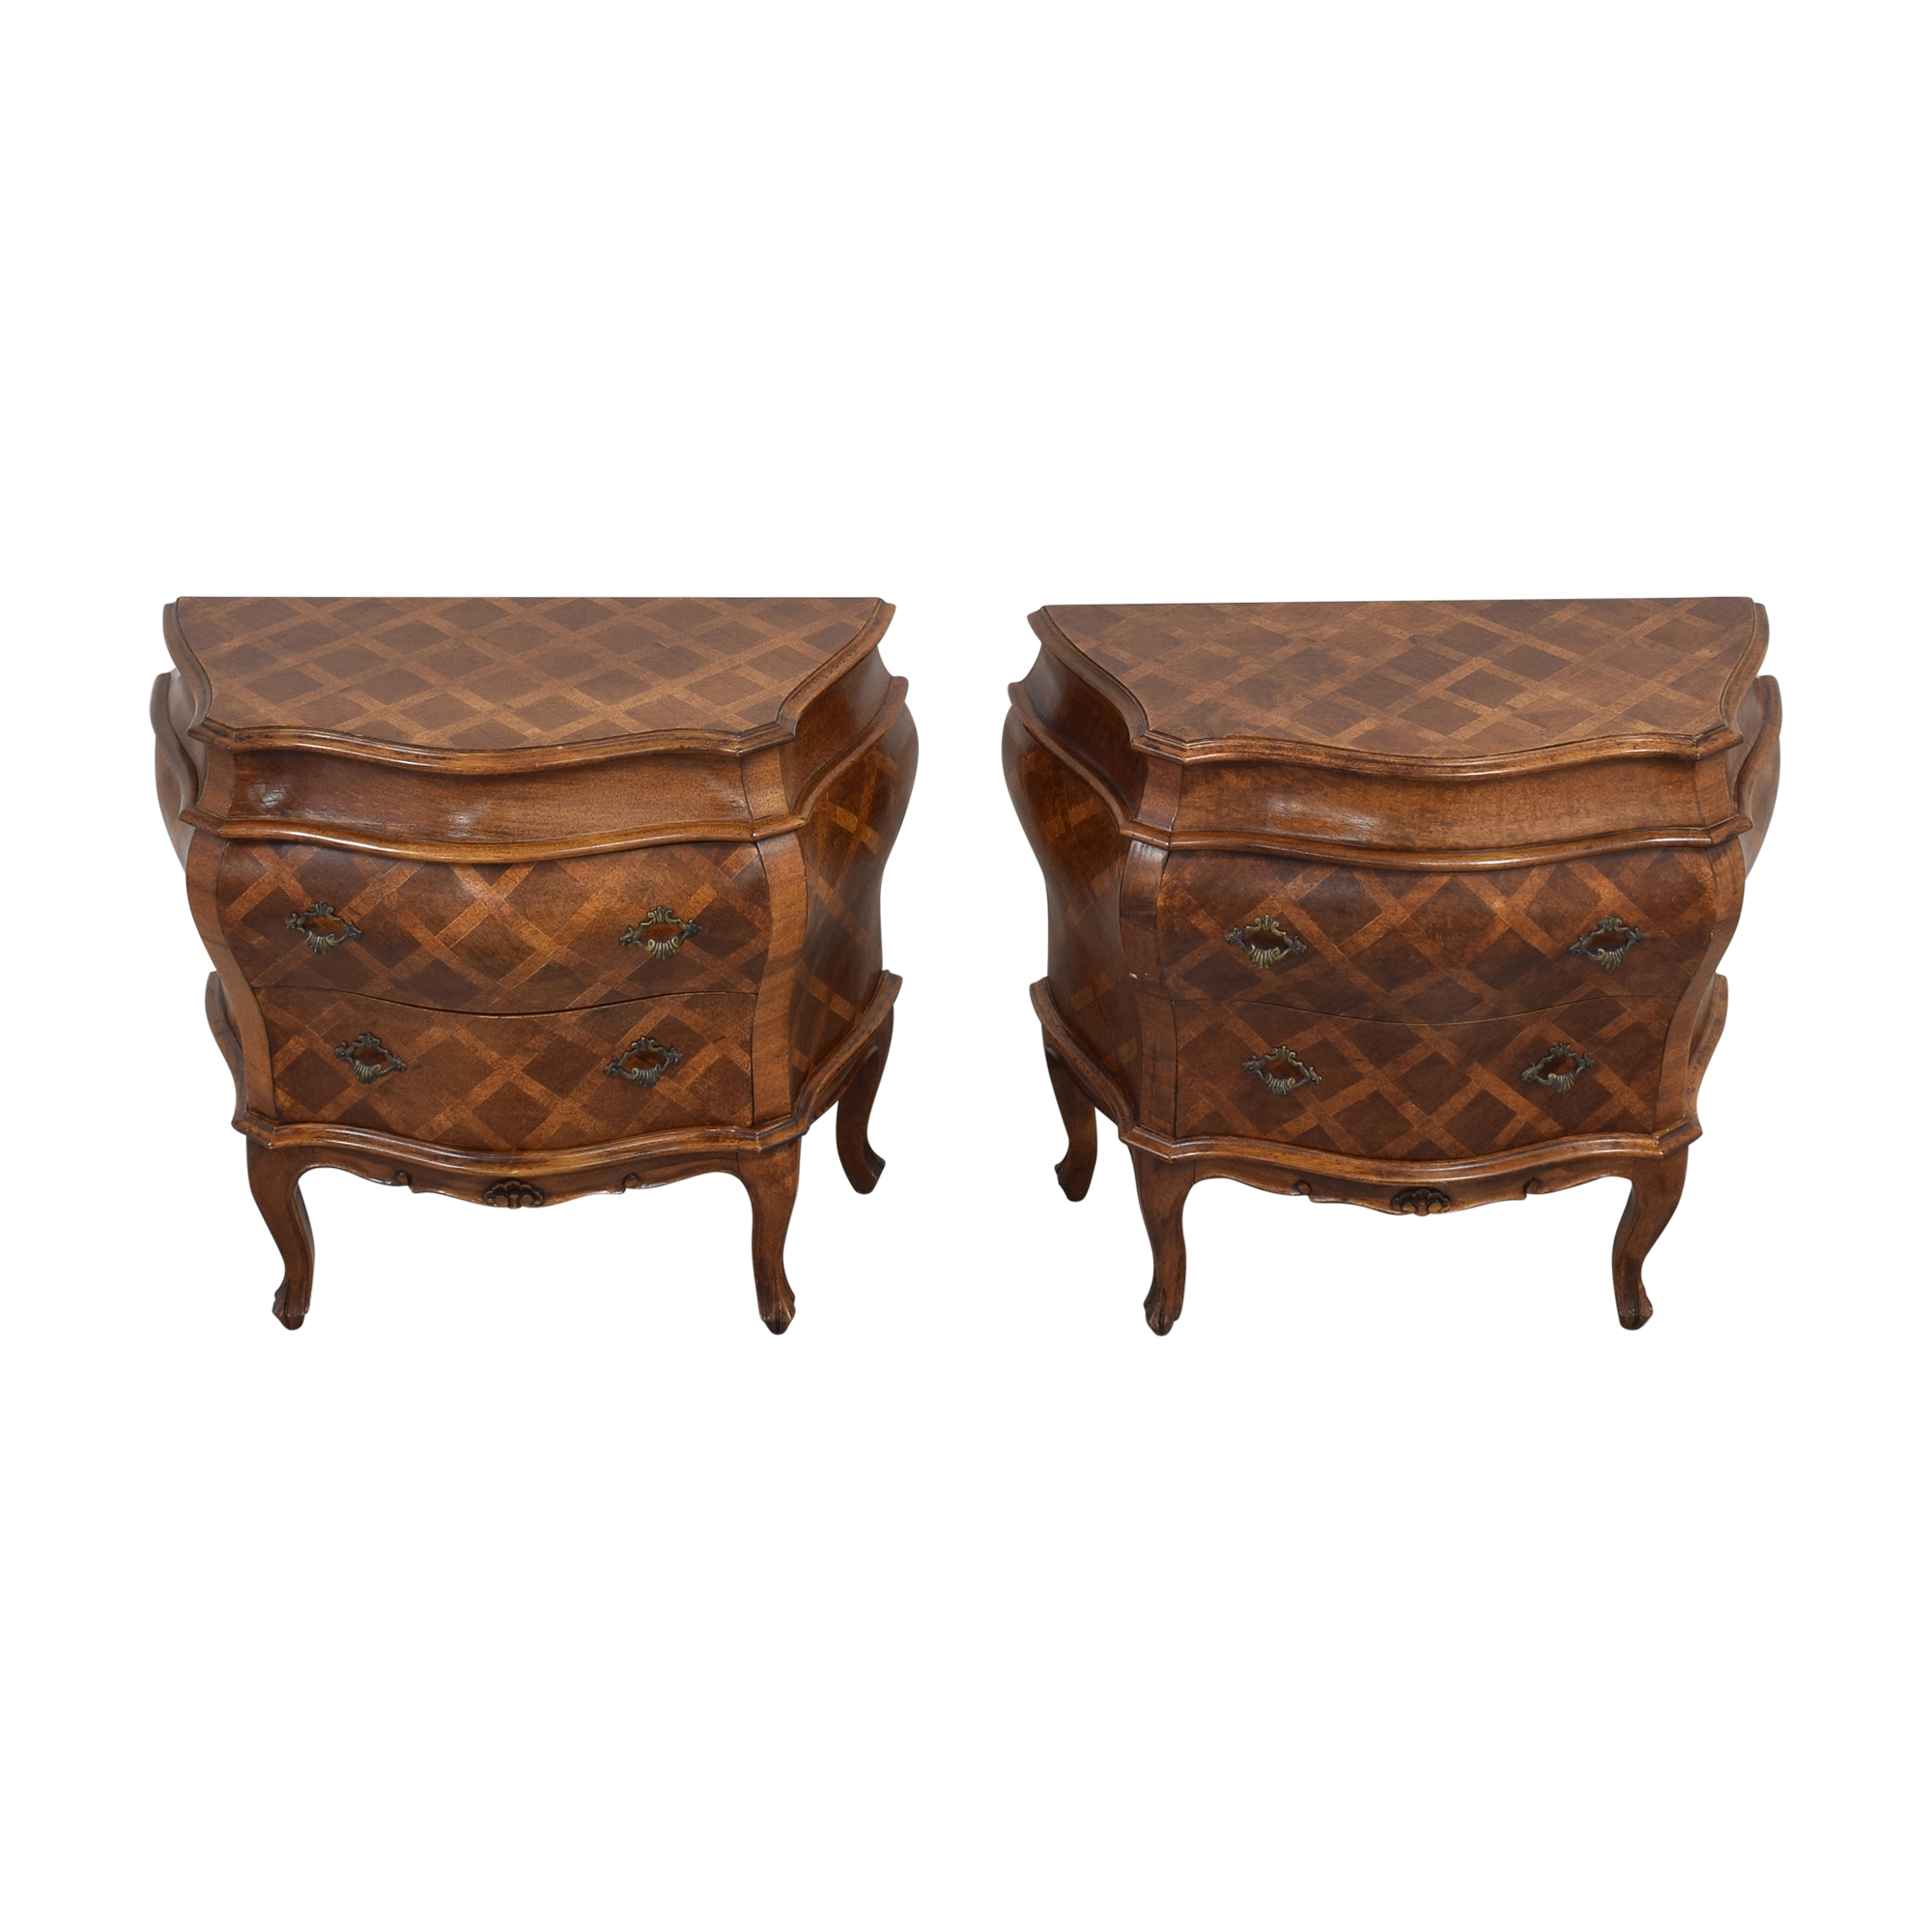 French Style Bombe Shaped End Tables Tables